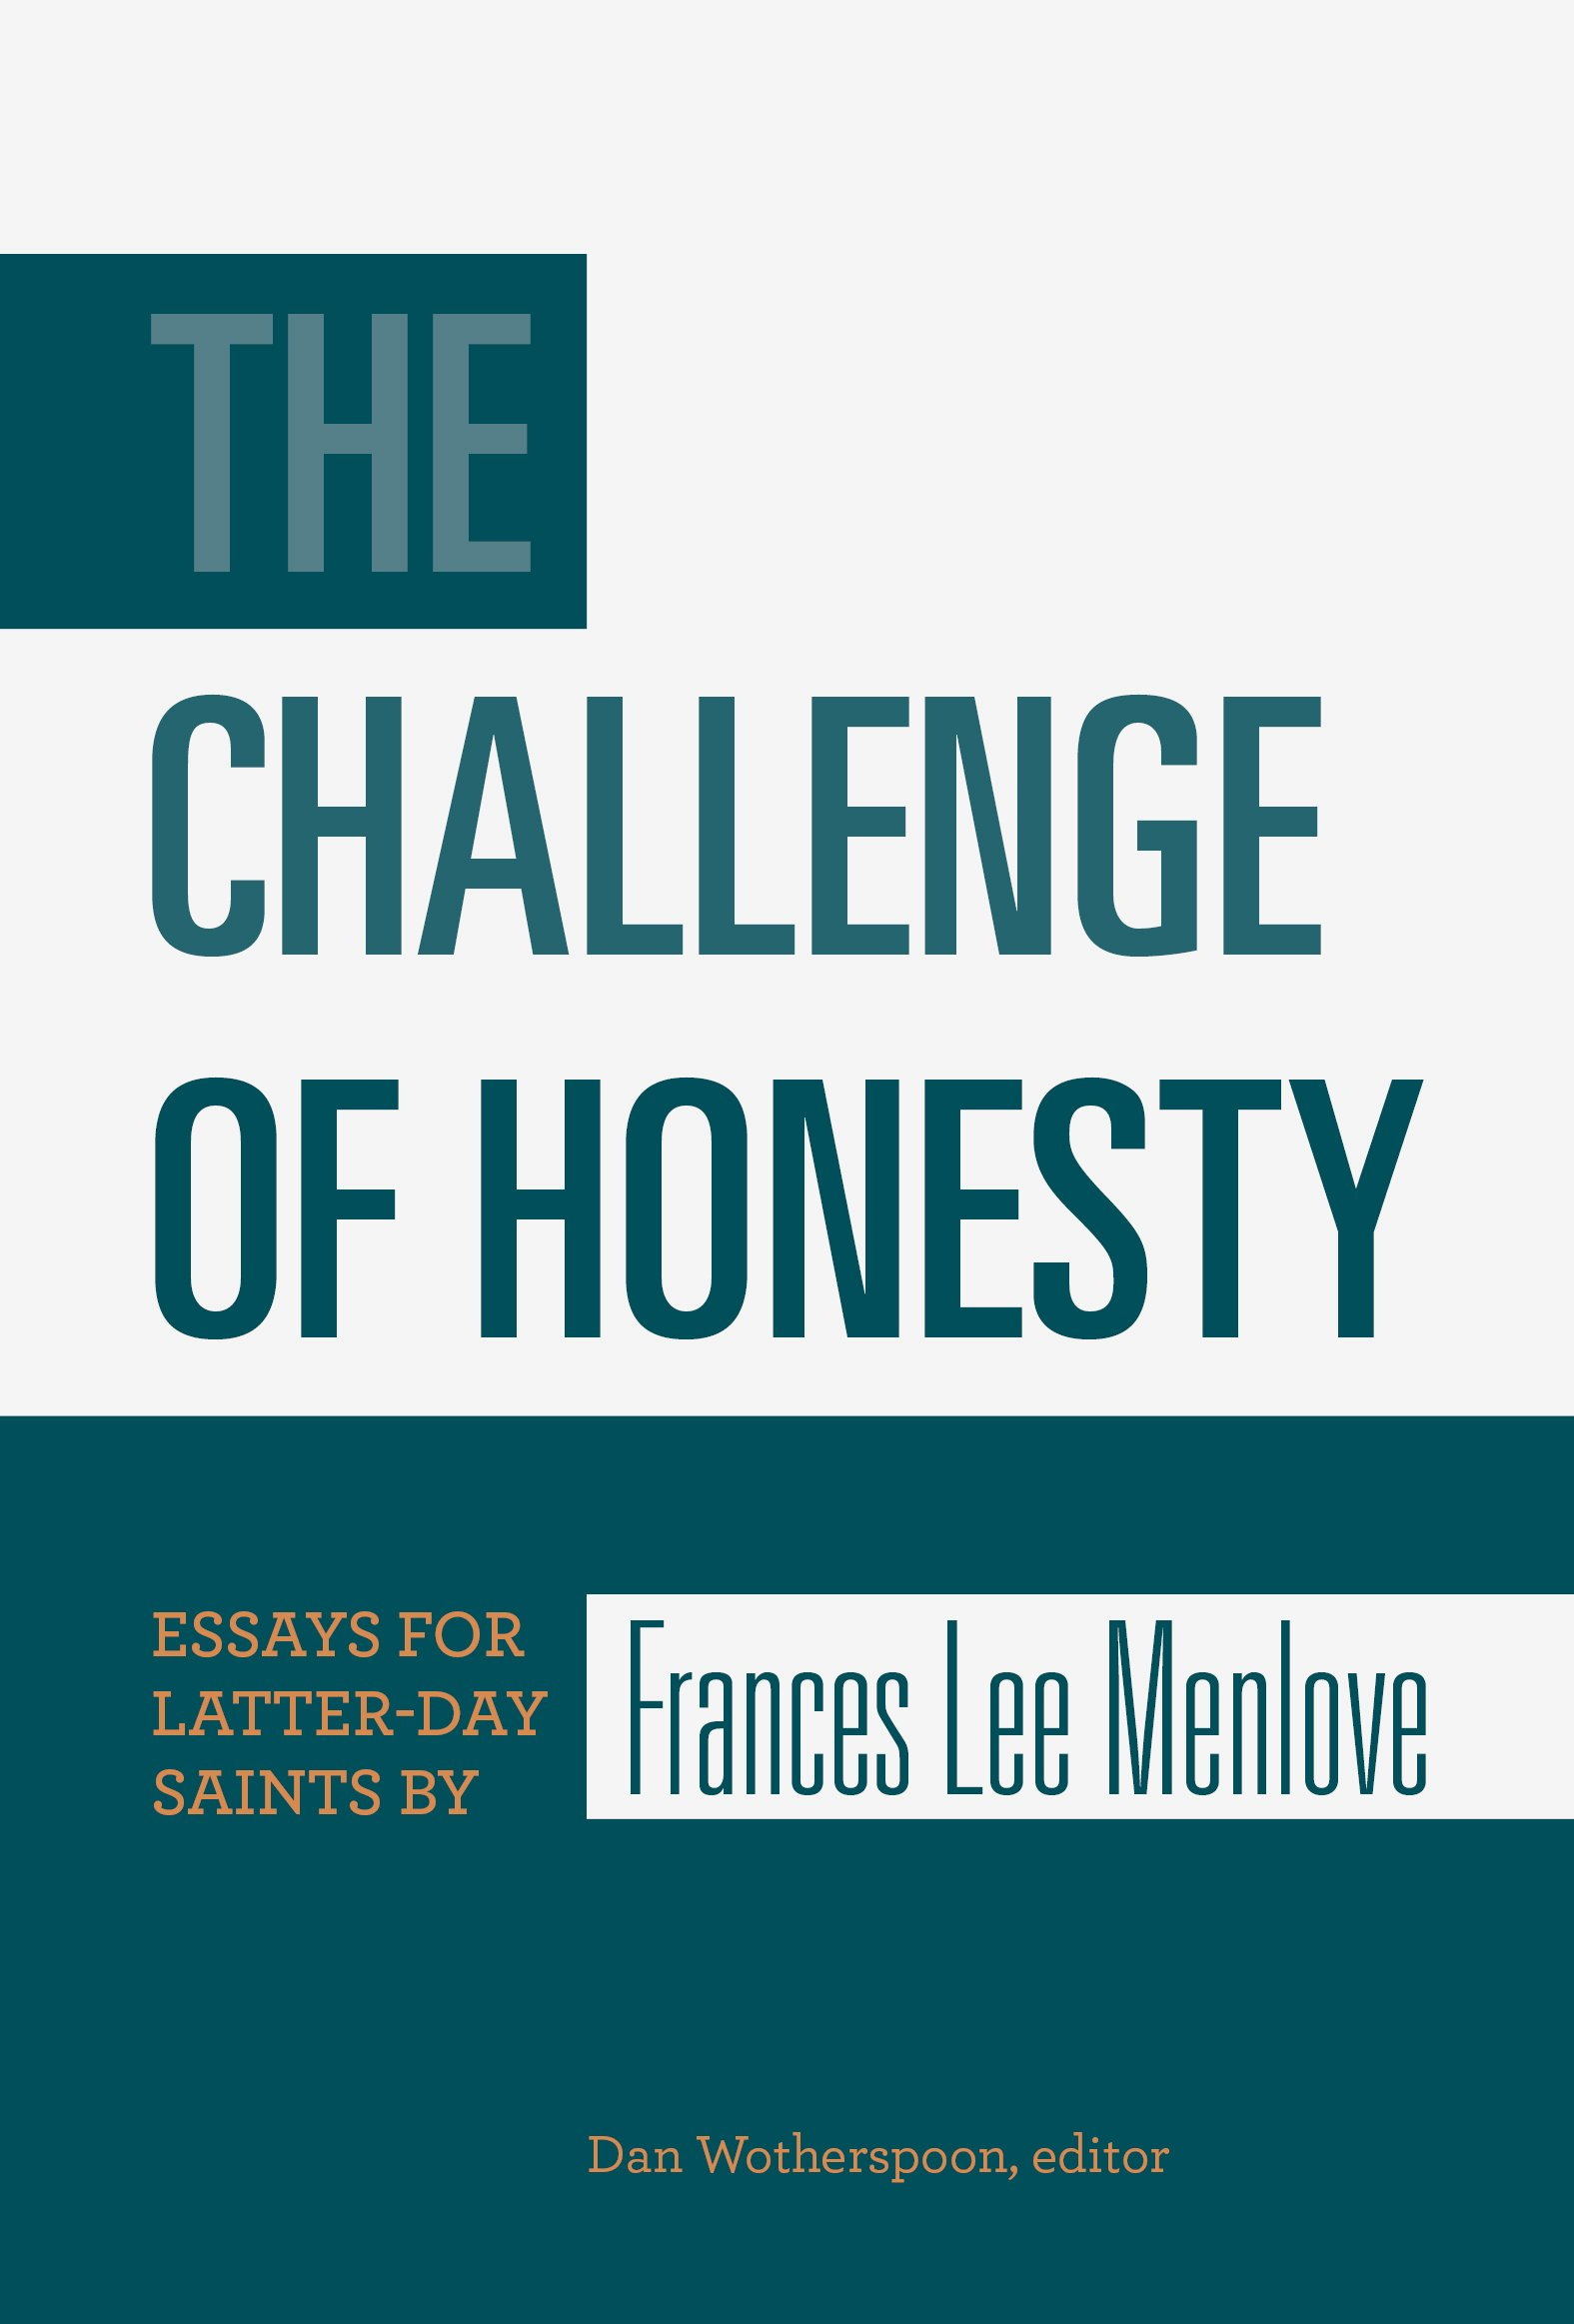 honesty essays doorway the challenge of honesty essays for latterday saints by s